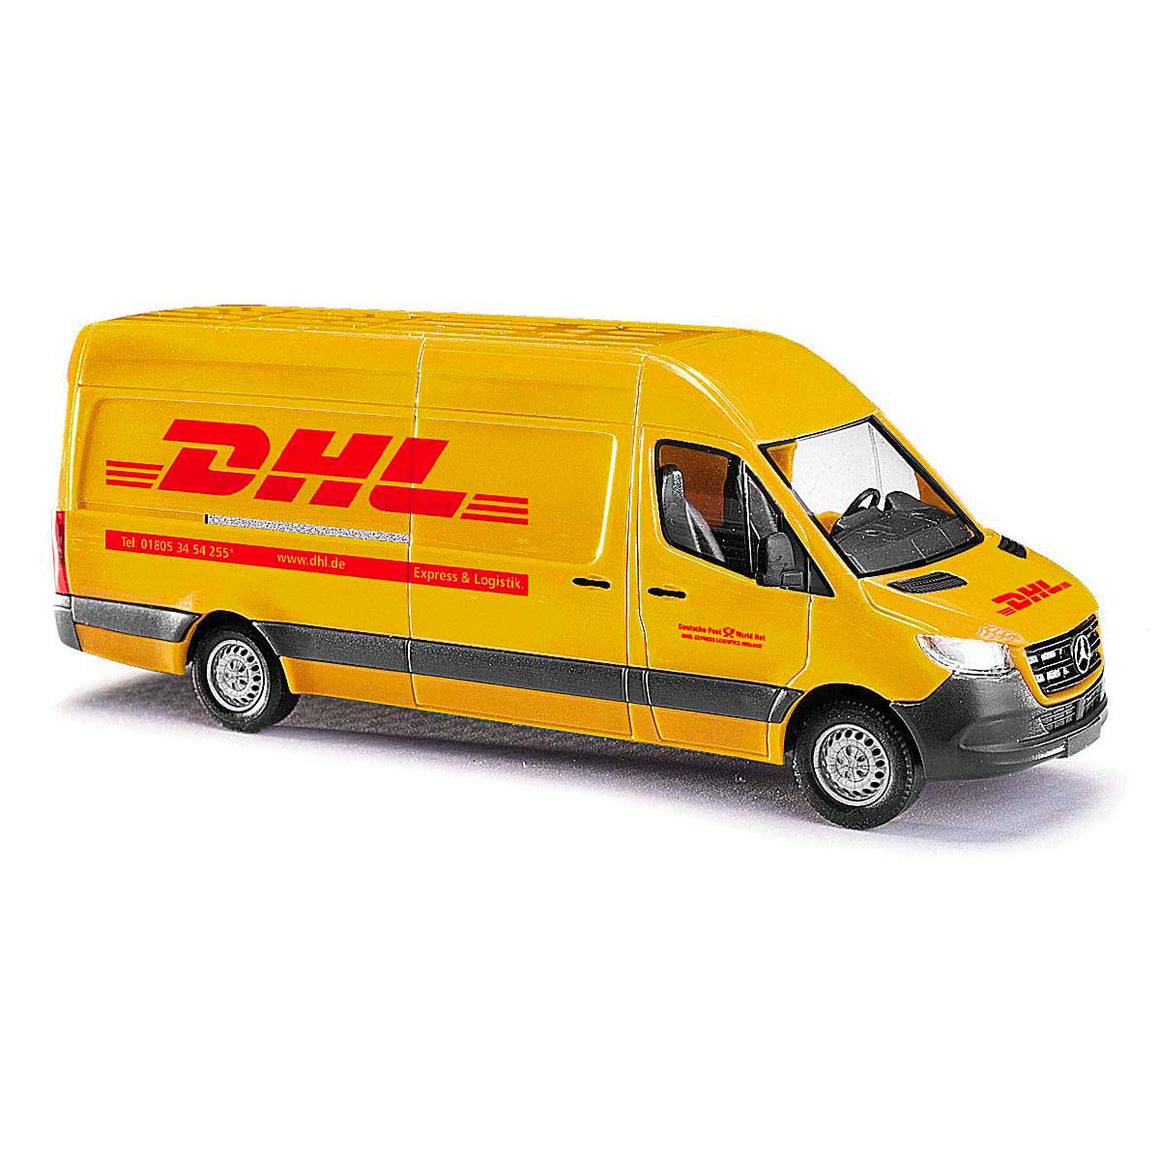 HO Scale: Mercedes Benz Sprinter Van - DHL